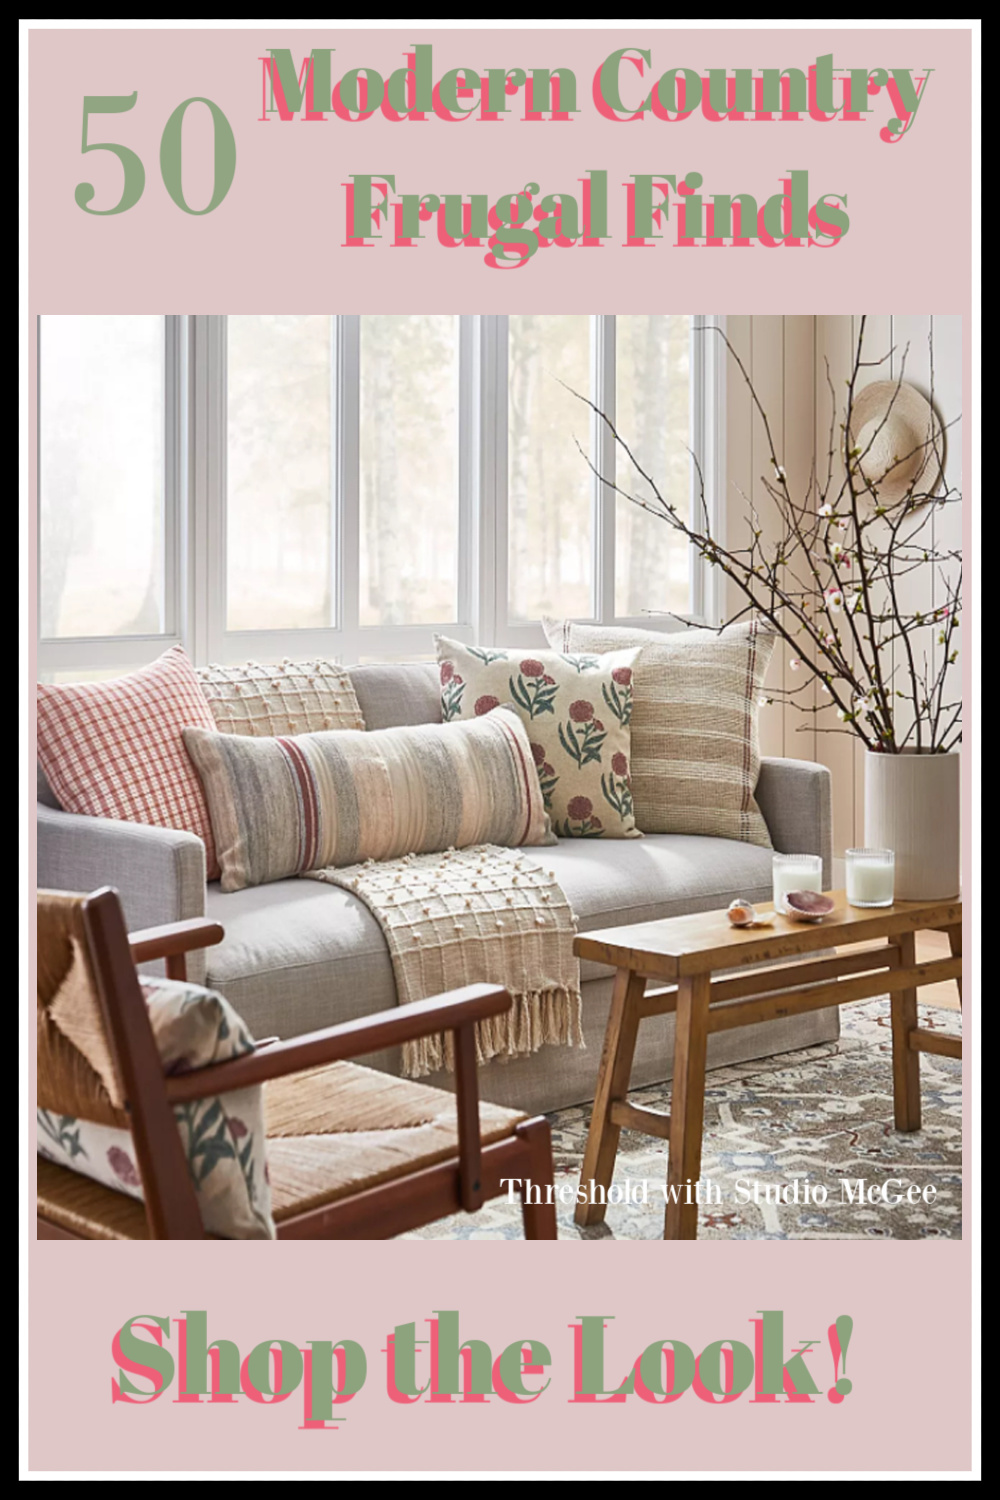 50 Modern Country Frugal Finds for Home on Hello Lovely! #shopthelook #moderncountry